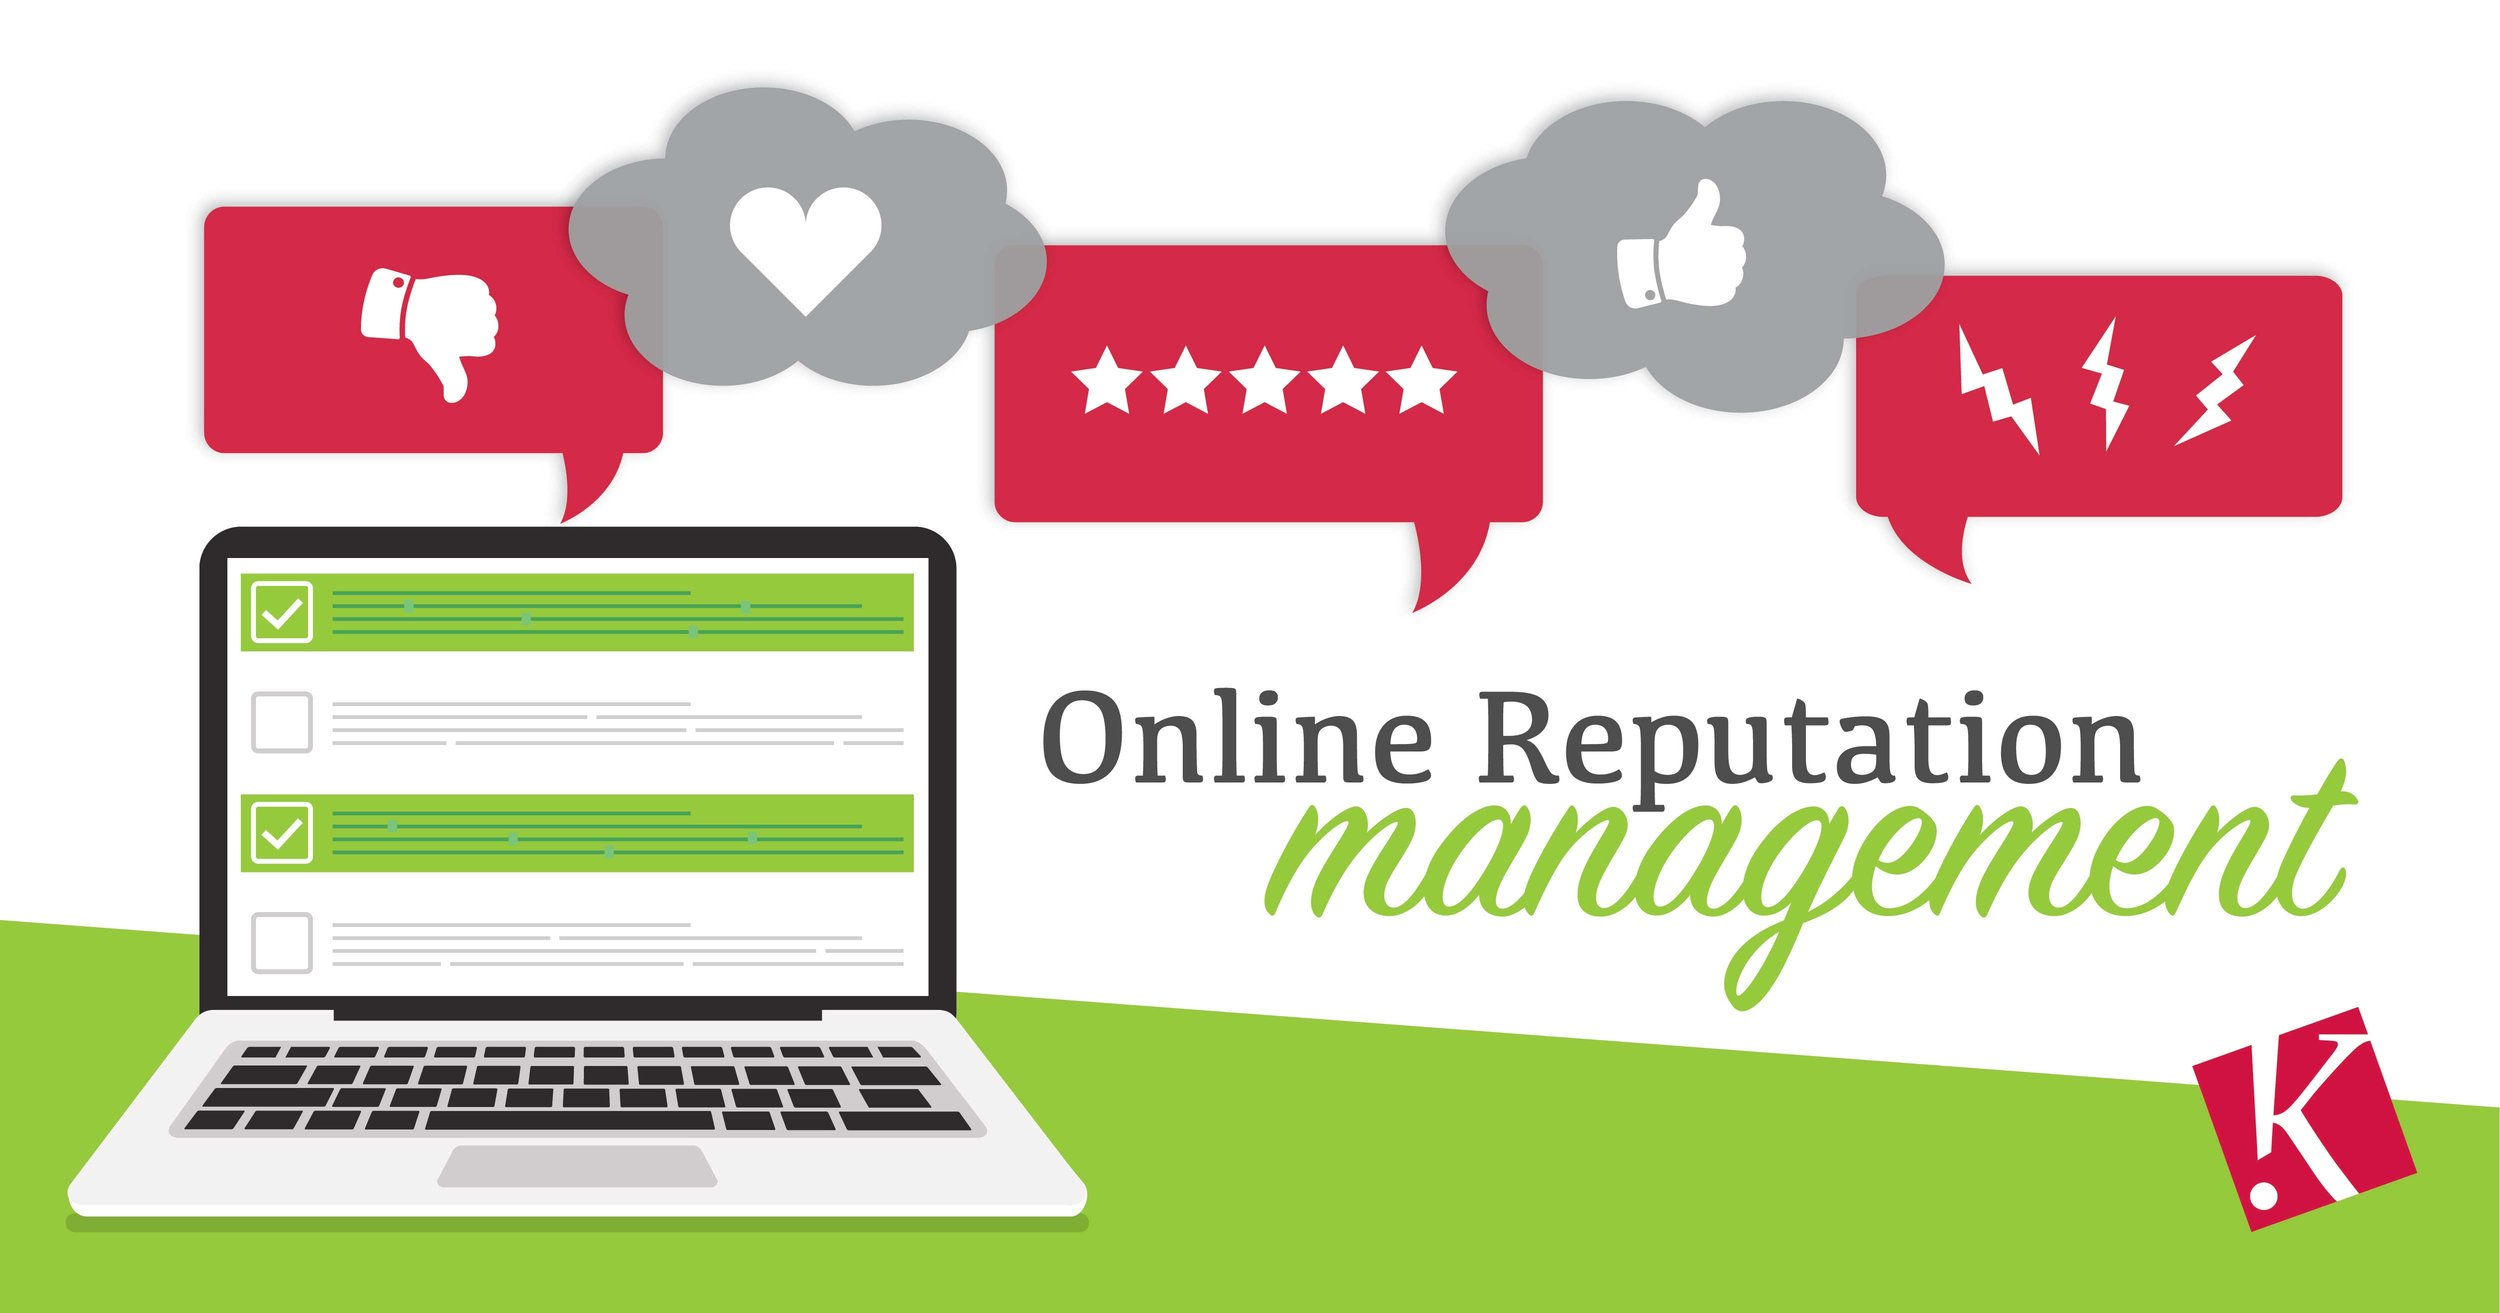 ONLINE REPUTATION MANAGEMENT: PROMOTE AND PROTECT YOUR BRAND ONLINE